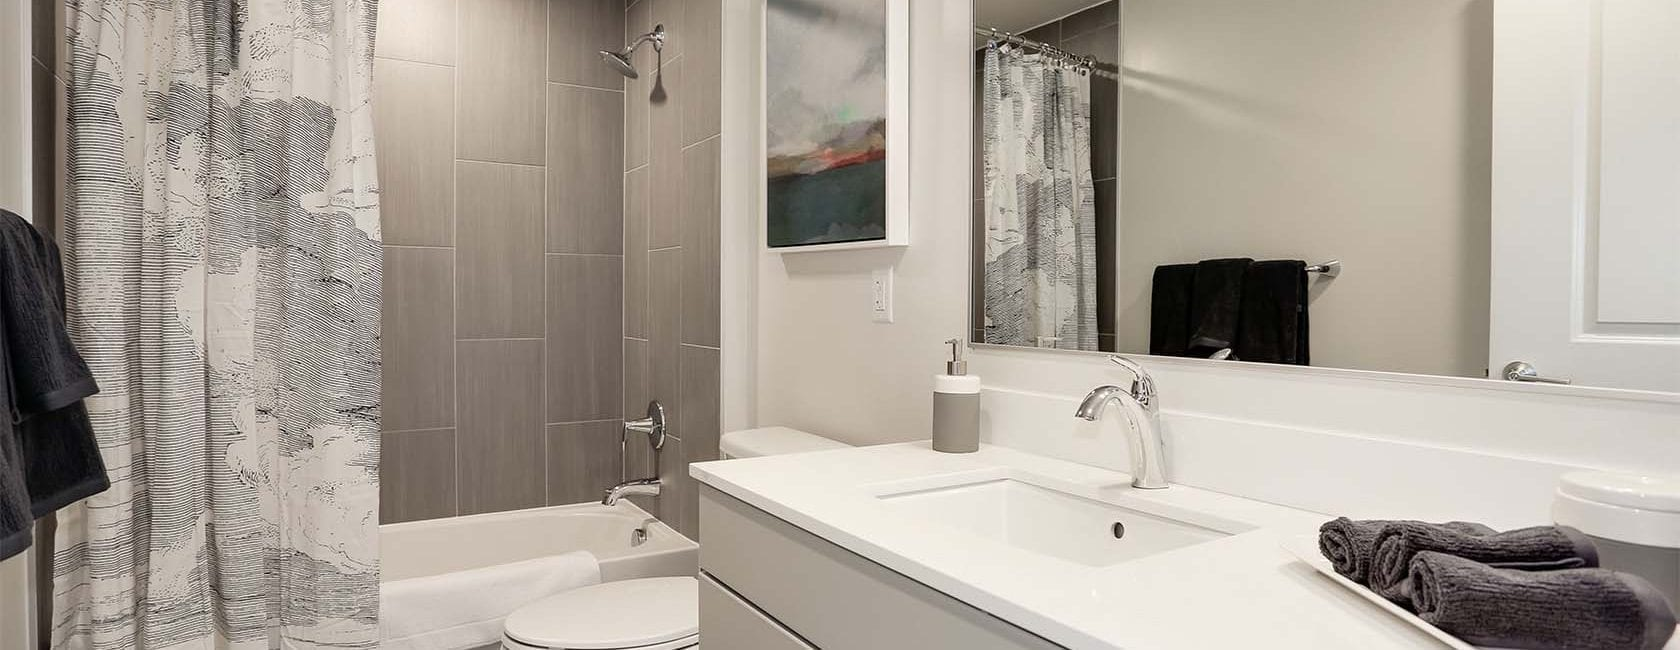 Parc Riverside West Bathroom with tiled bath surrounds, and grey cabinetry with white countertop